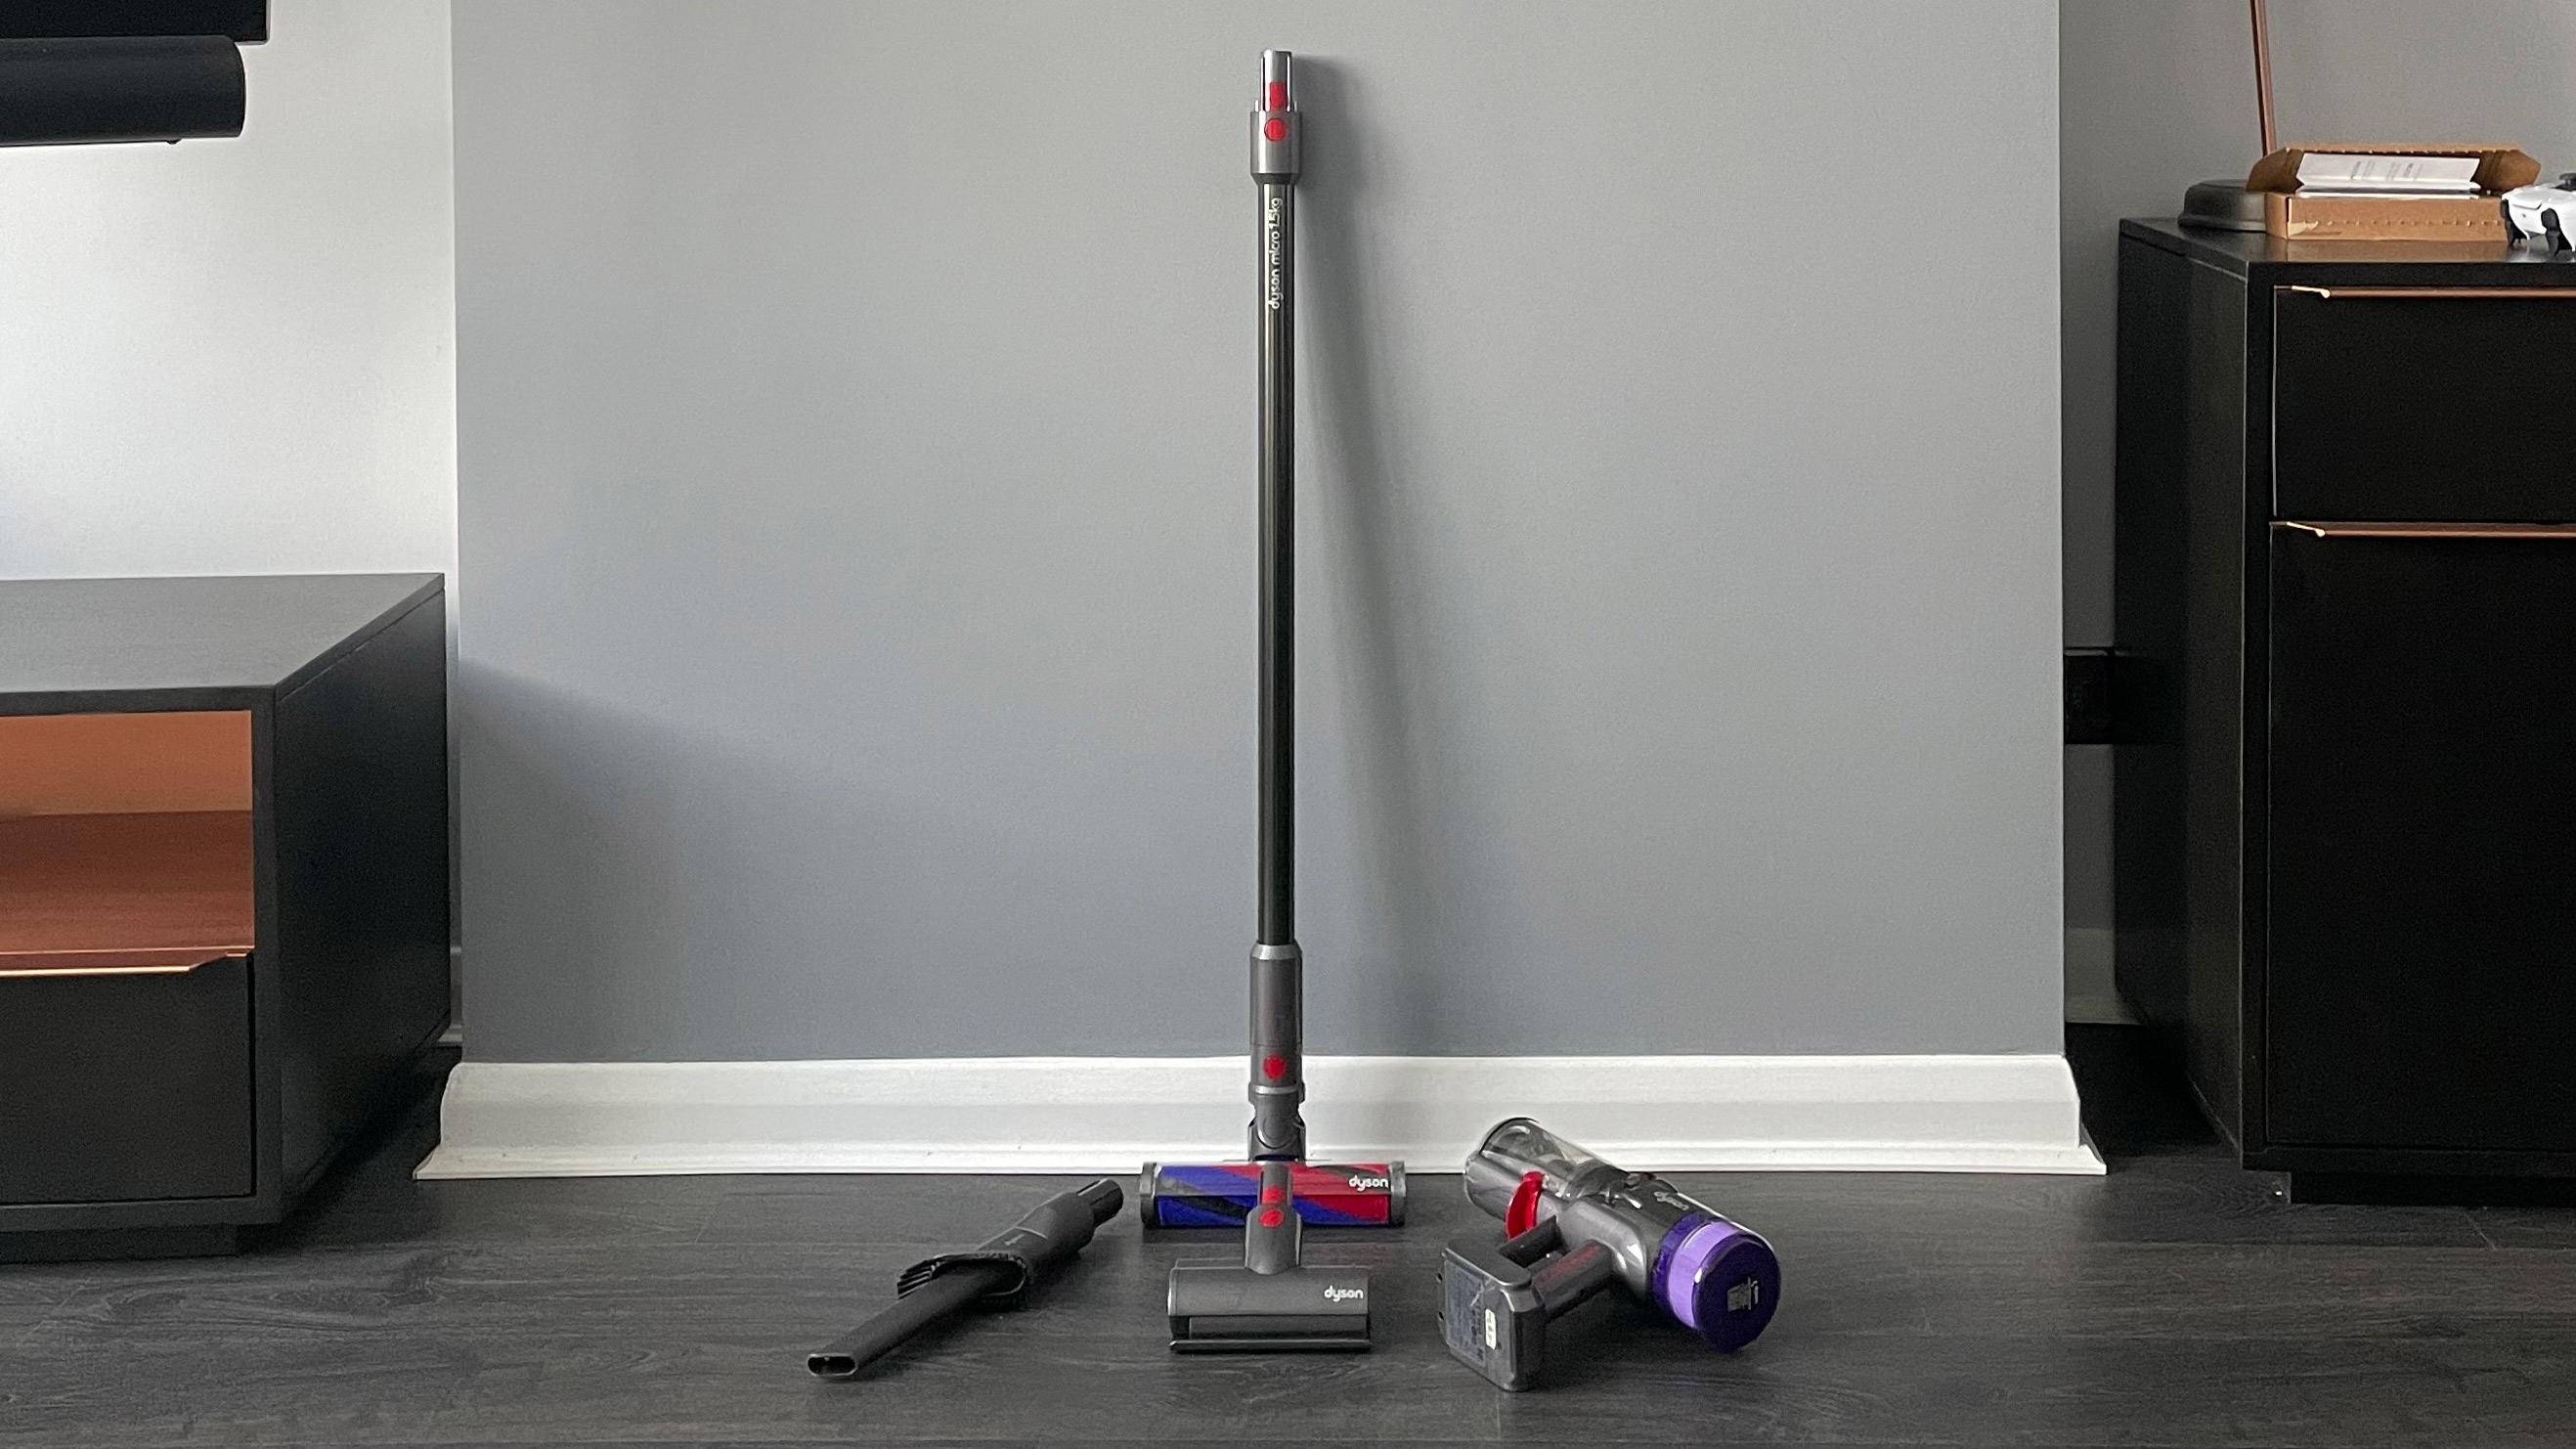 The Dyson Micro 1.5kg and its attachements leaning against a wall